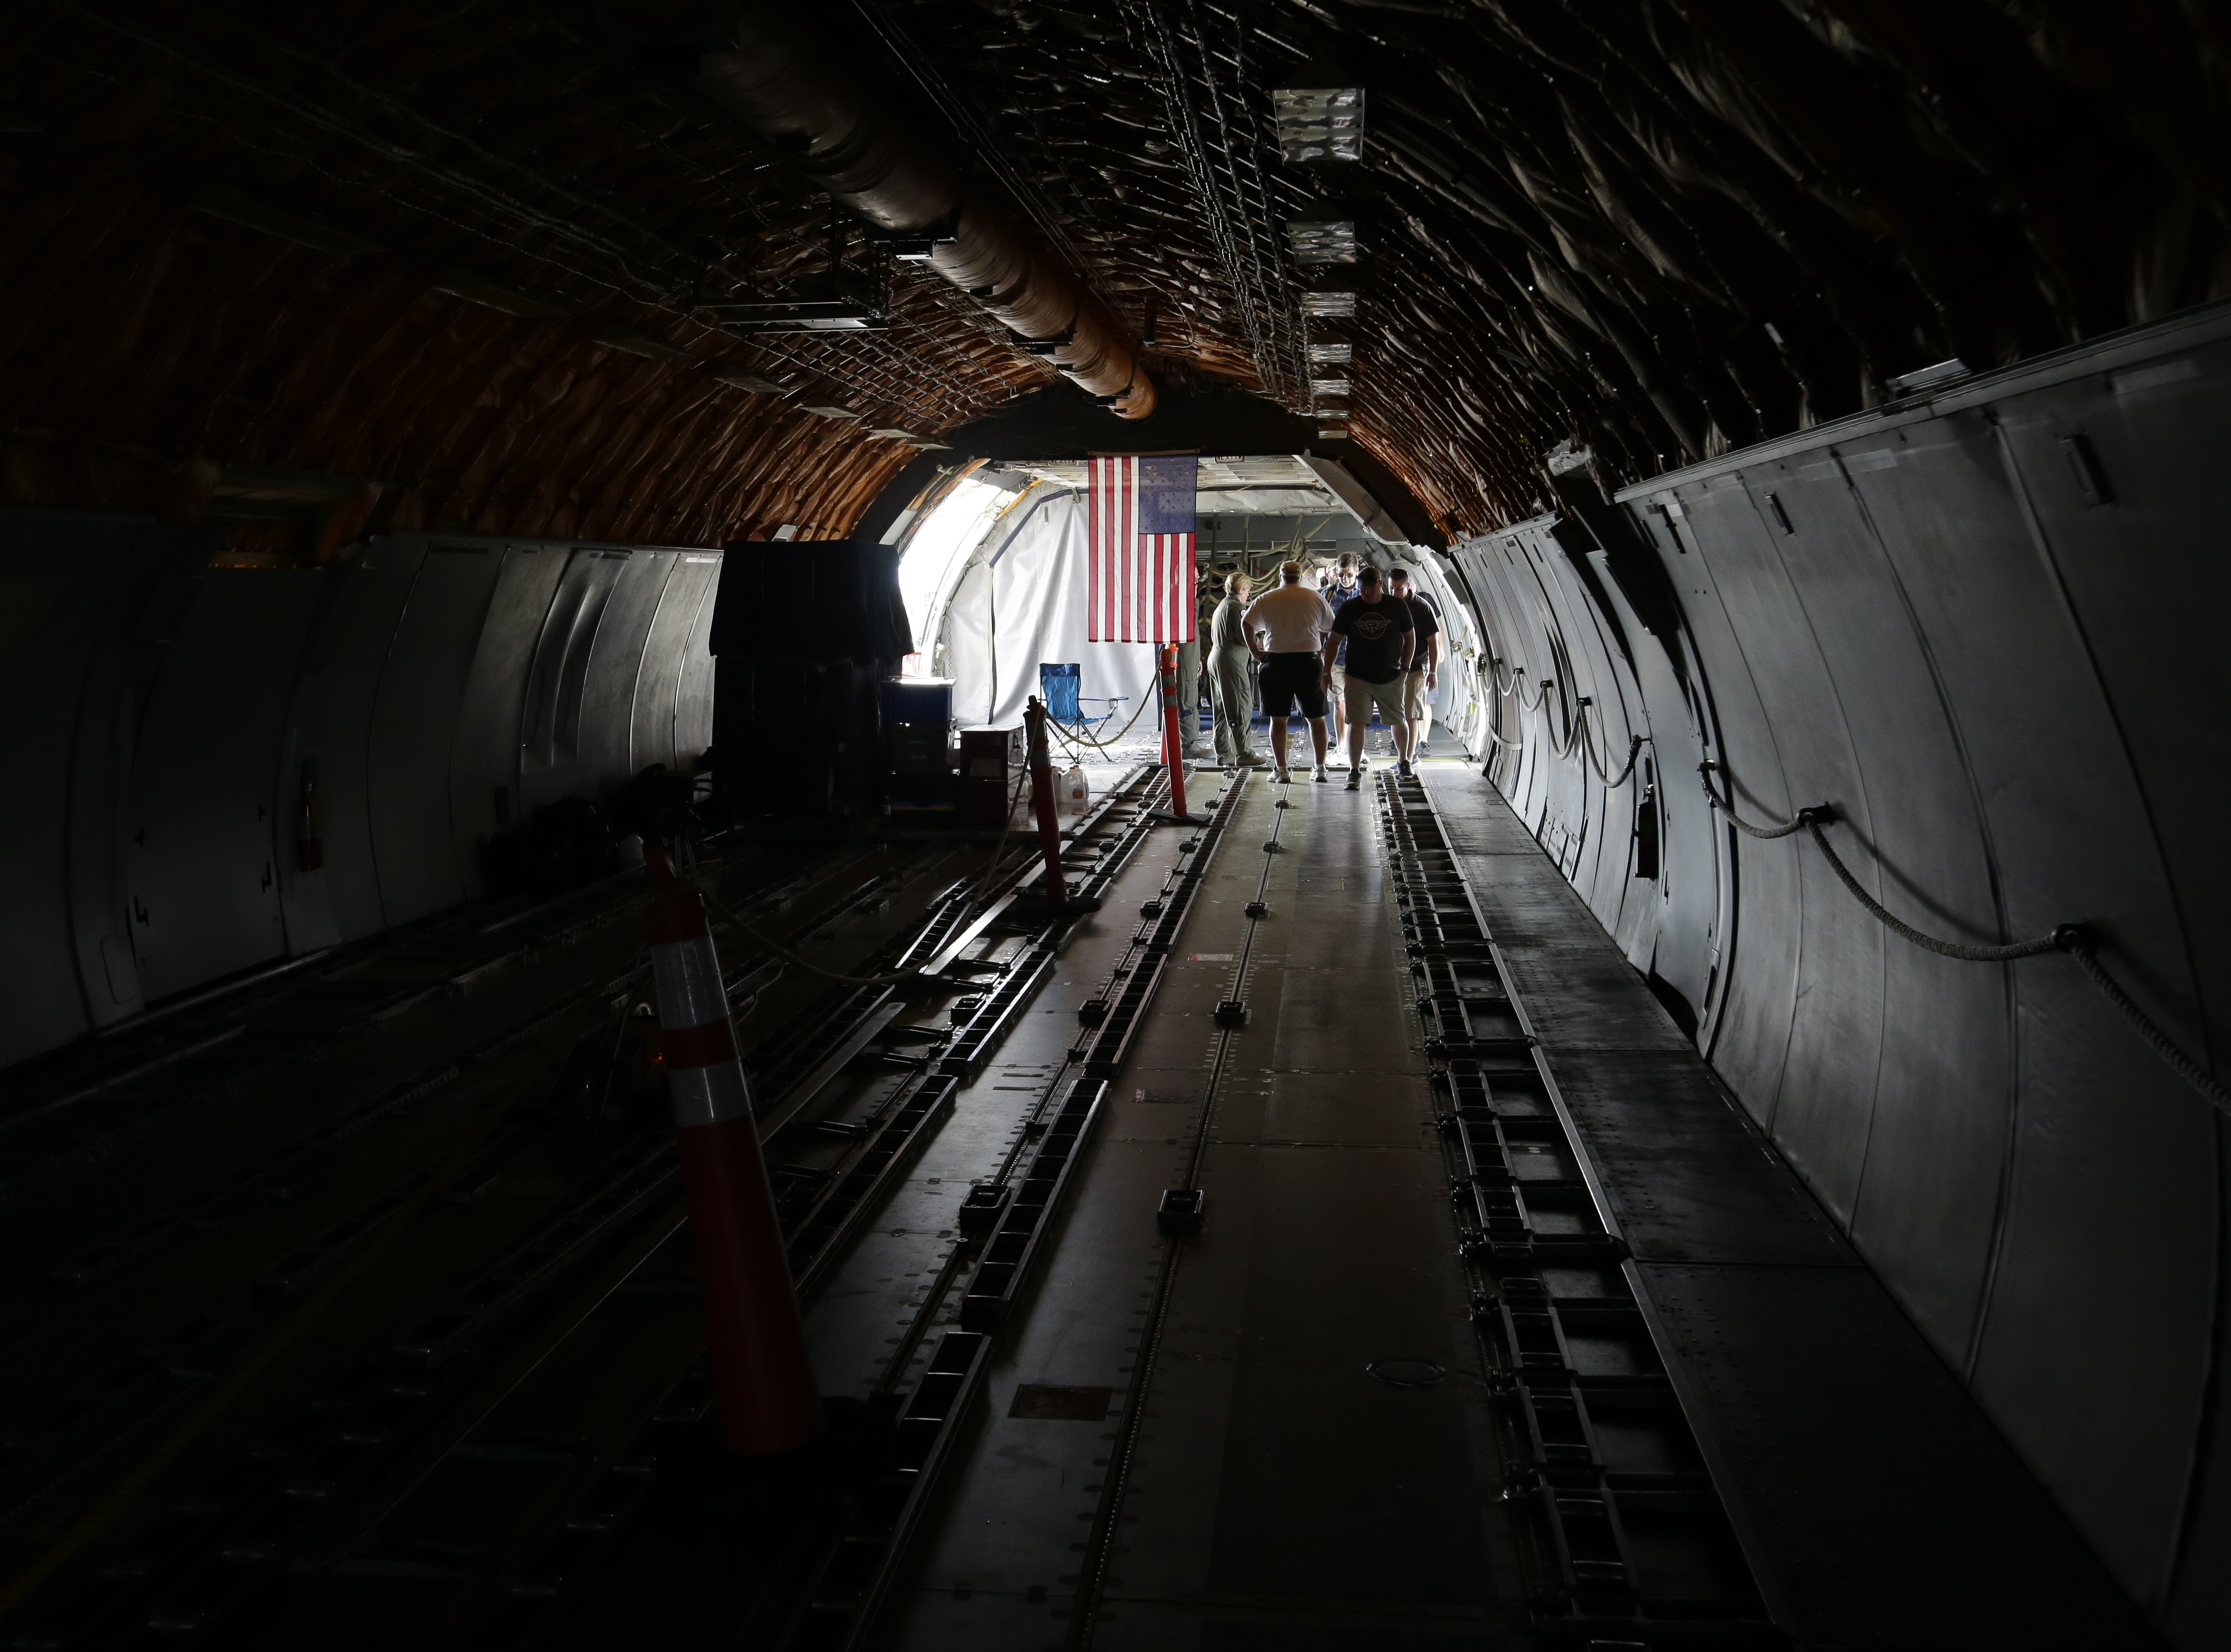 Inside the cargo area of the McDonnell Douglas KC-10 Extender, Friday, July 27, 2018, in Oshkosh, Wis.  The 66th annual Experimental Aircraft Association Fly-In Convention, AirVenture 2018 draws over 500,000 people and over 10,000 planes from more than 70 nations annually to the area.  The convention runs through July 29.Joe Sienkiewicz/USA Today NETWORK-Wisconsin